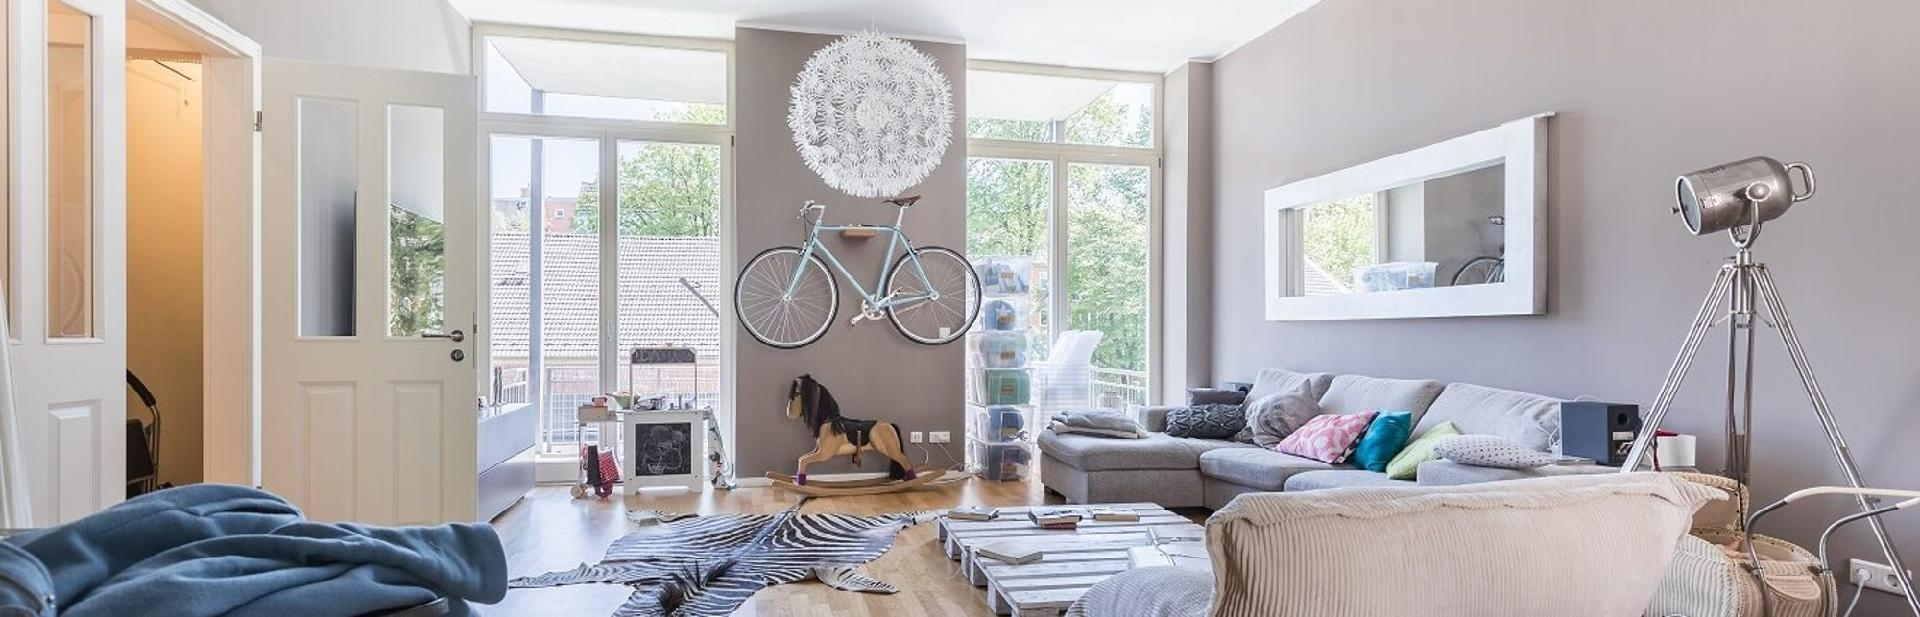 5 Small Home Improvements to Prepare Your Home to Sell Picture